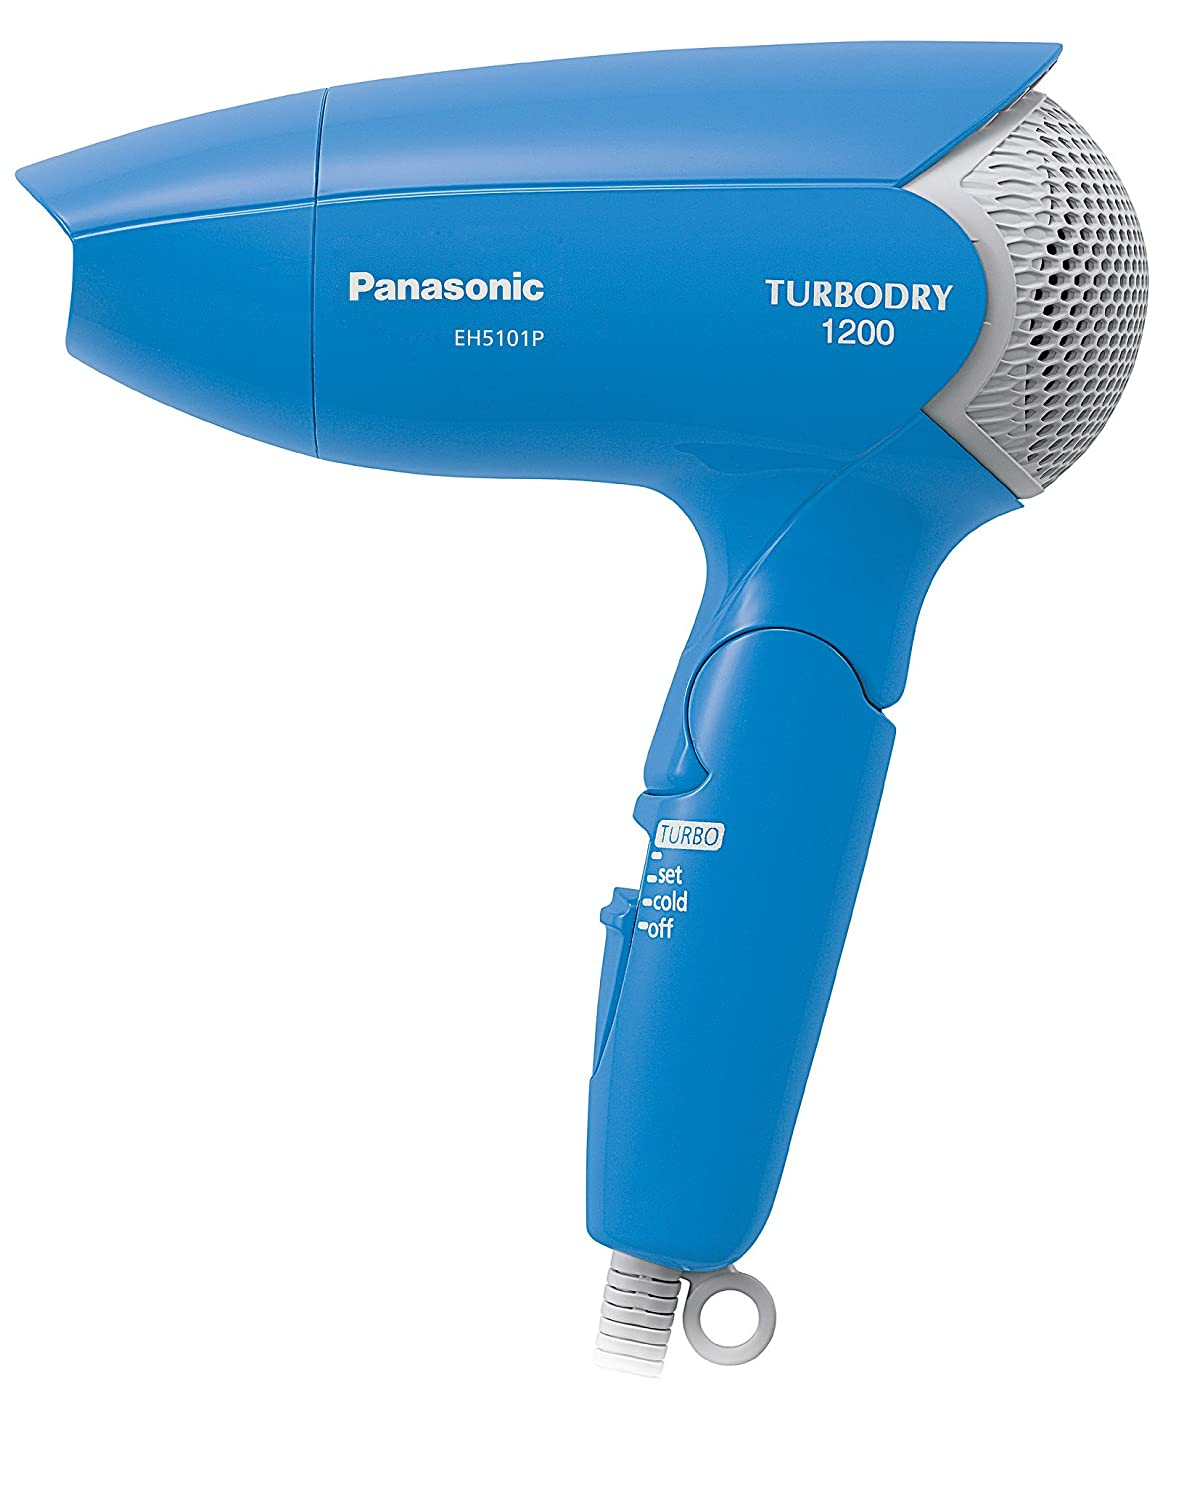 Japan Health and Beauty - Panasonic hair dryer turbo dry 1200 blue EH5101P-A *AF27* Panasonic (Panasonic)